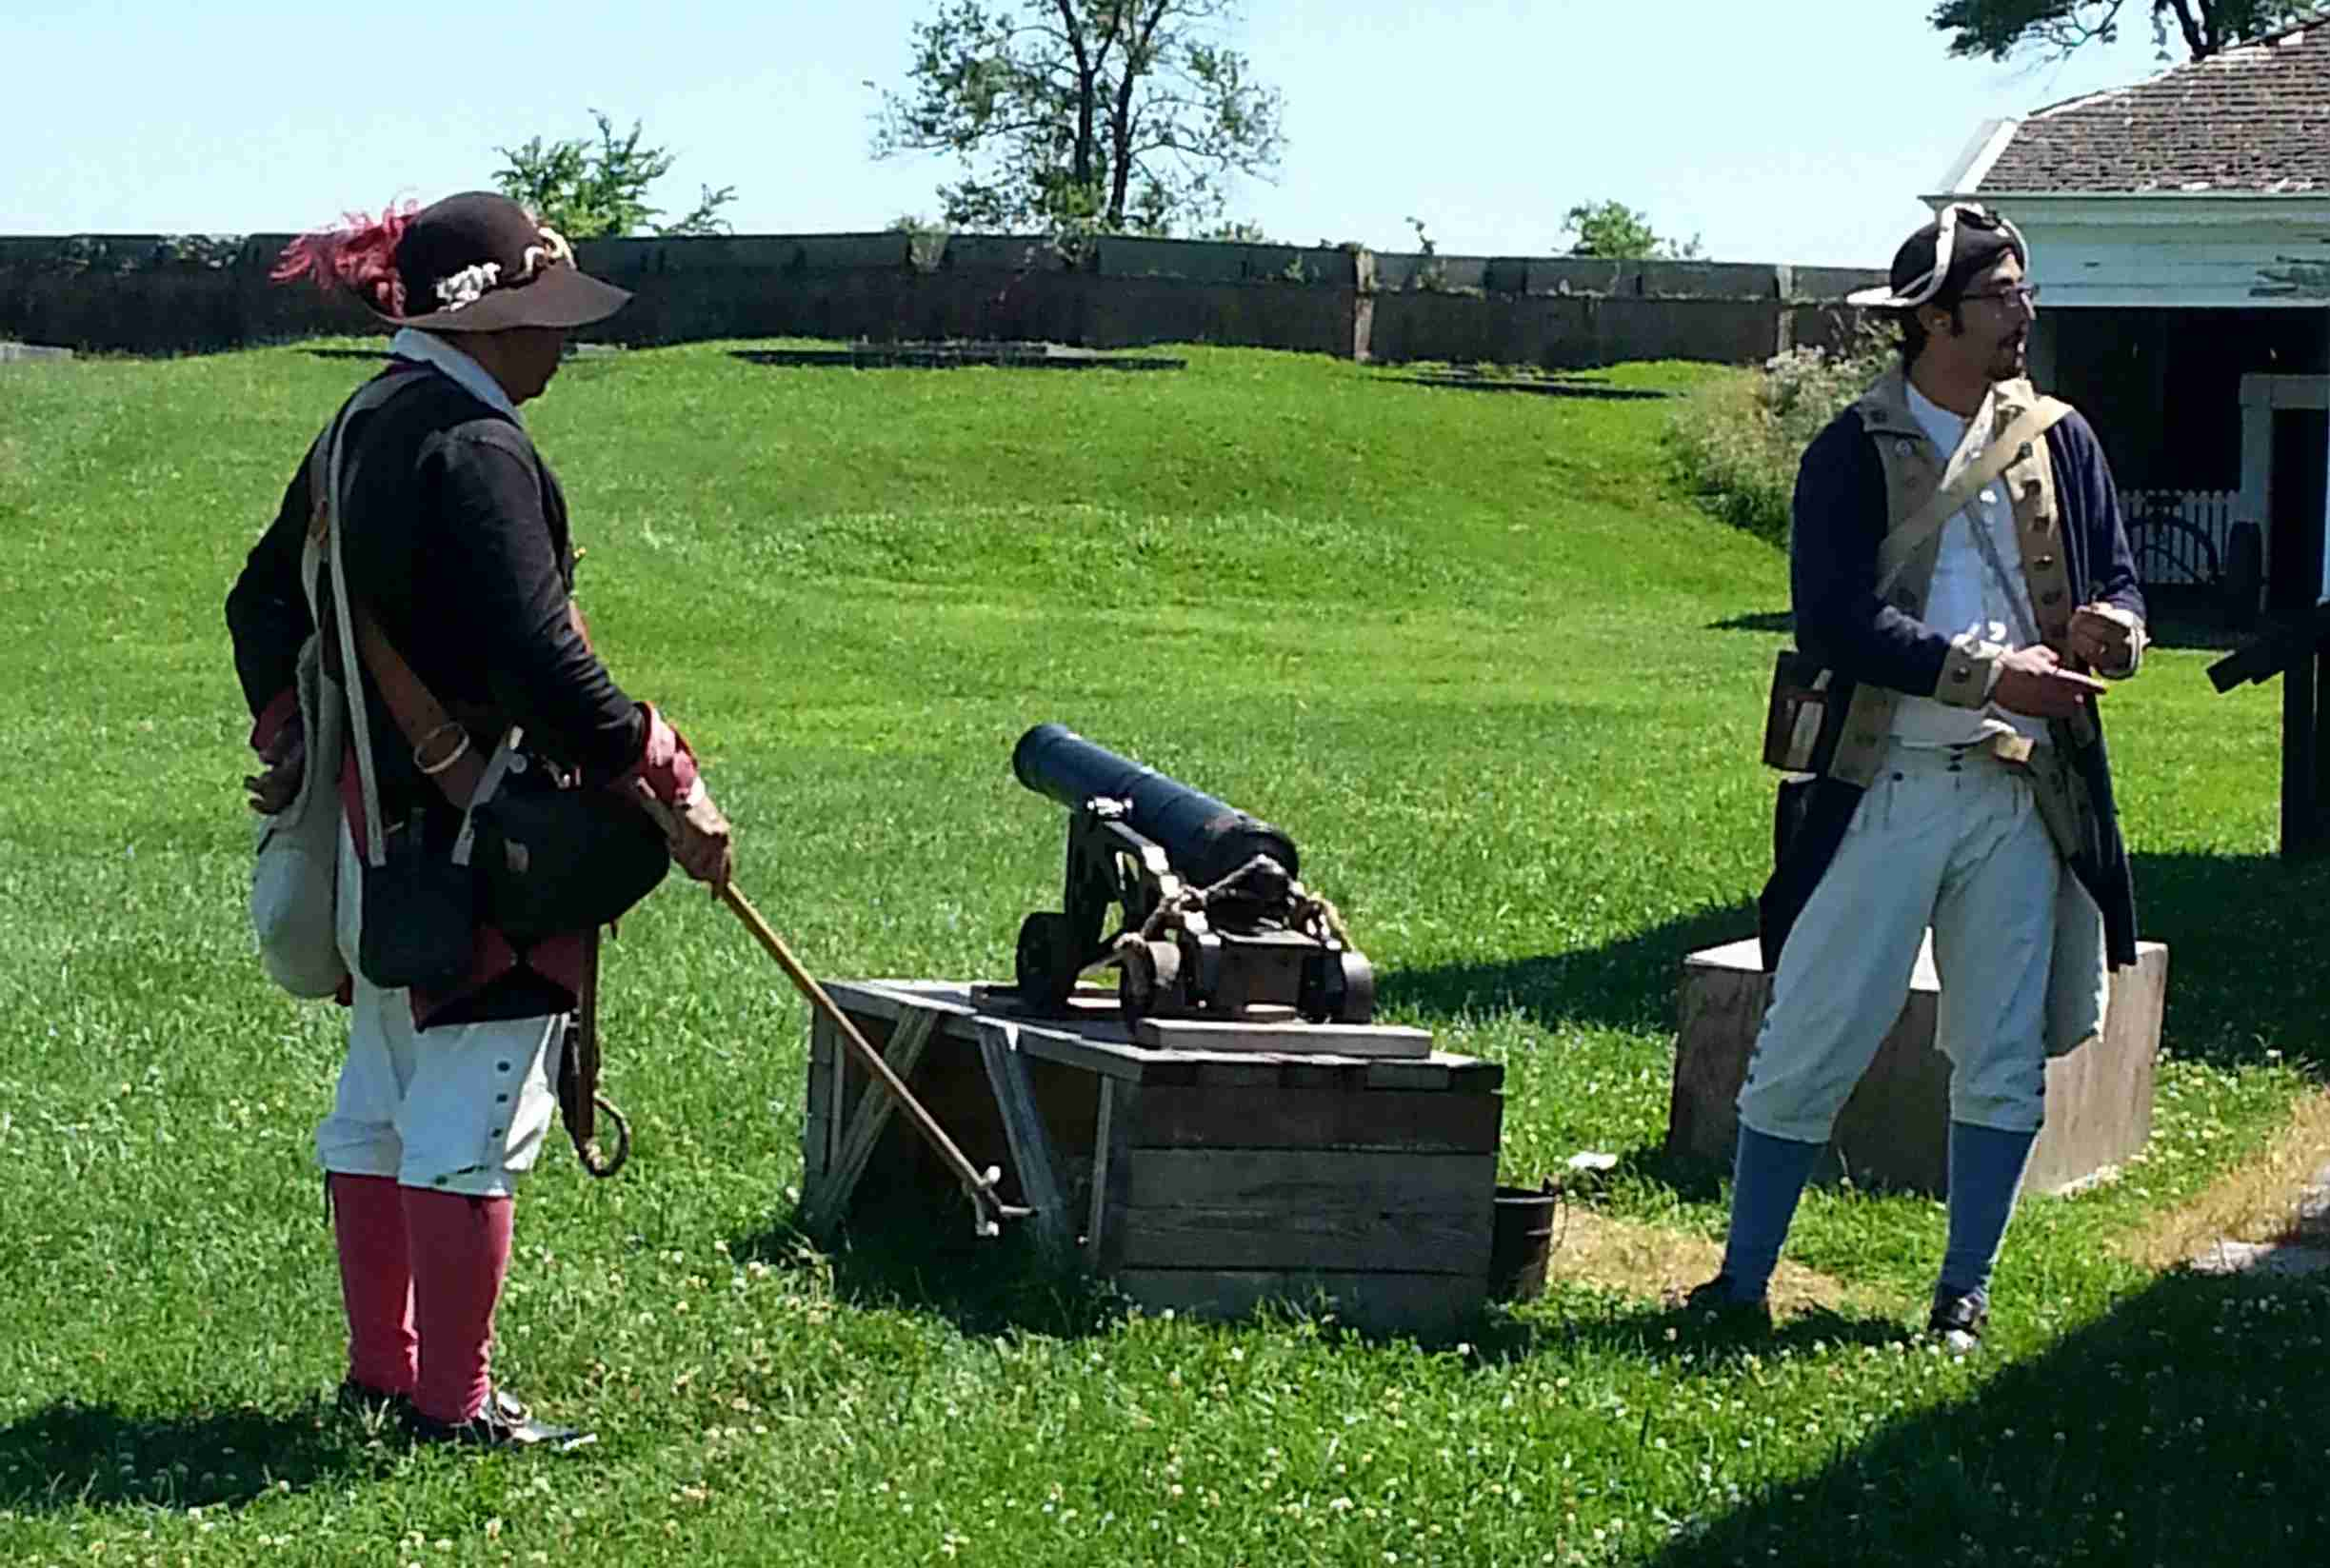 Image courtesy of Fort Mifflin on the Delaware.